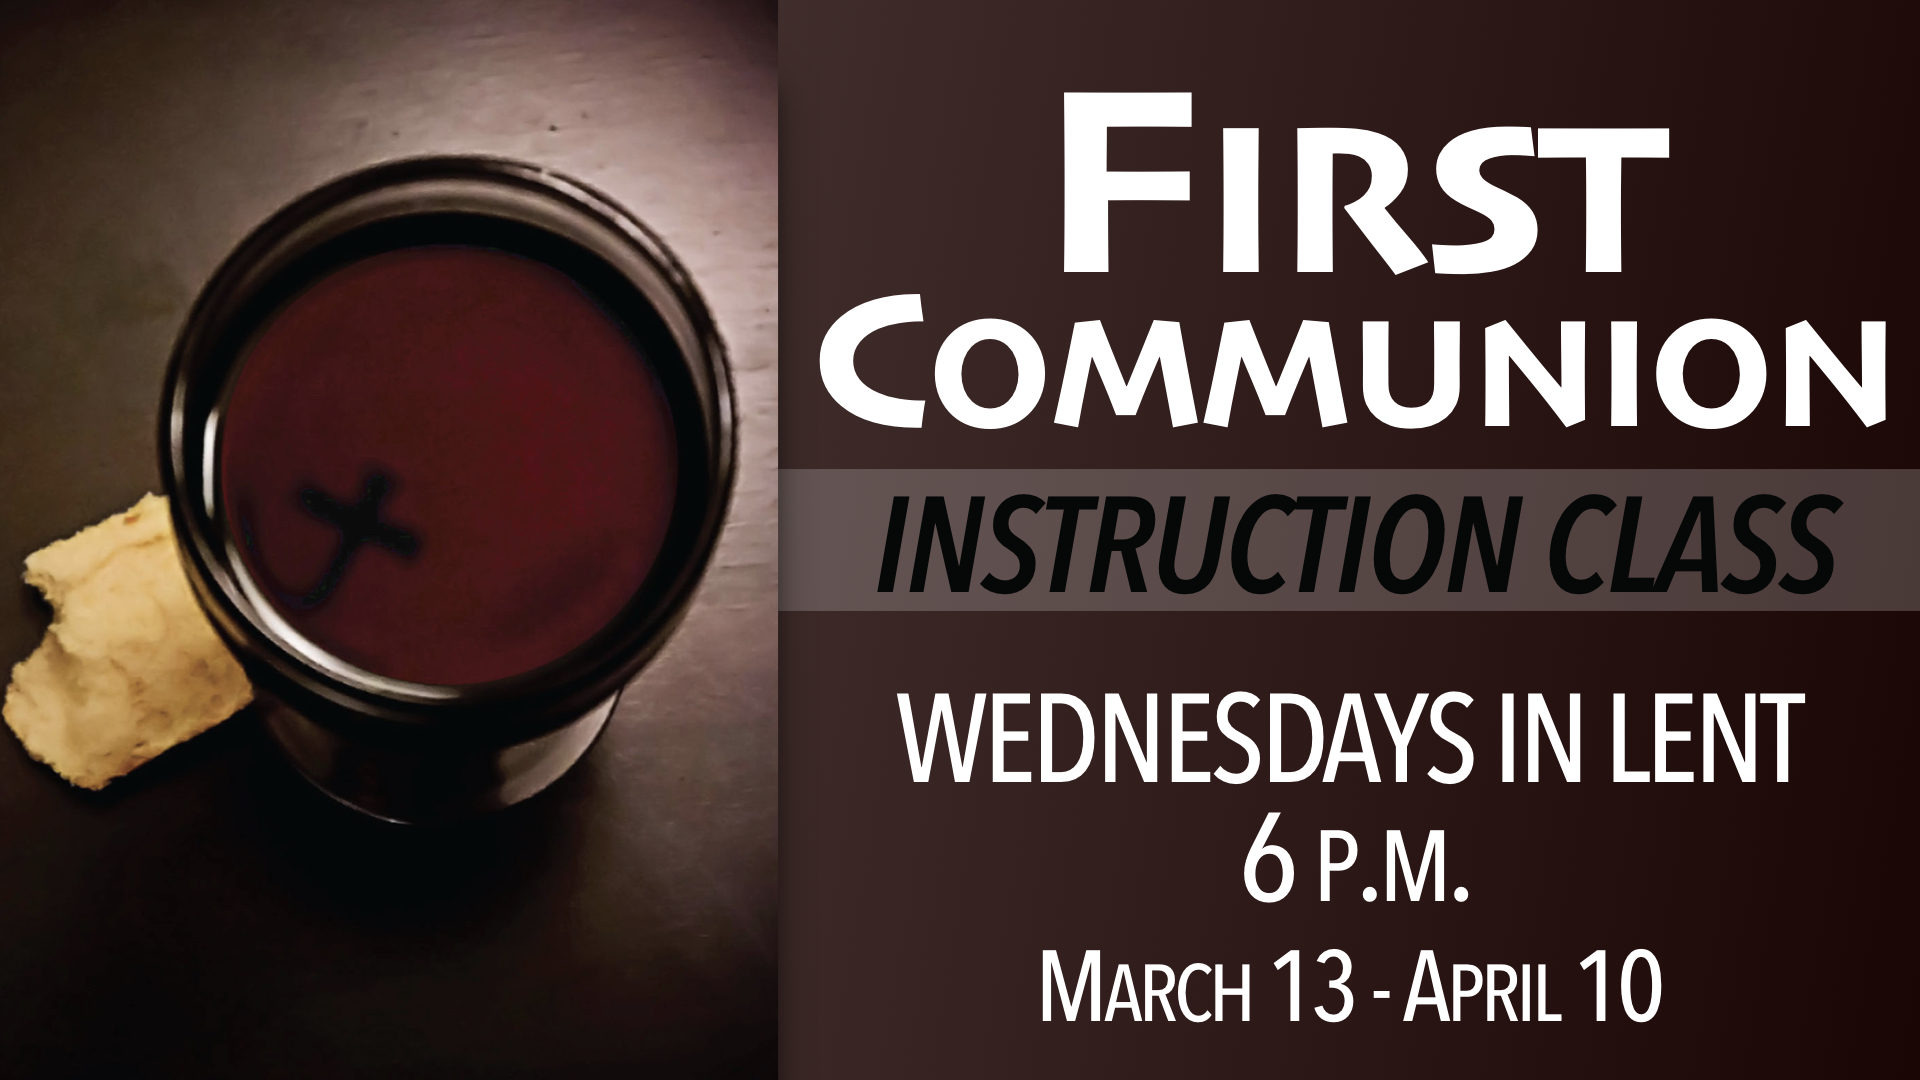 First Communion Instruction Class Wednesdays in Lent at 6 p.m.